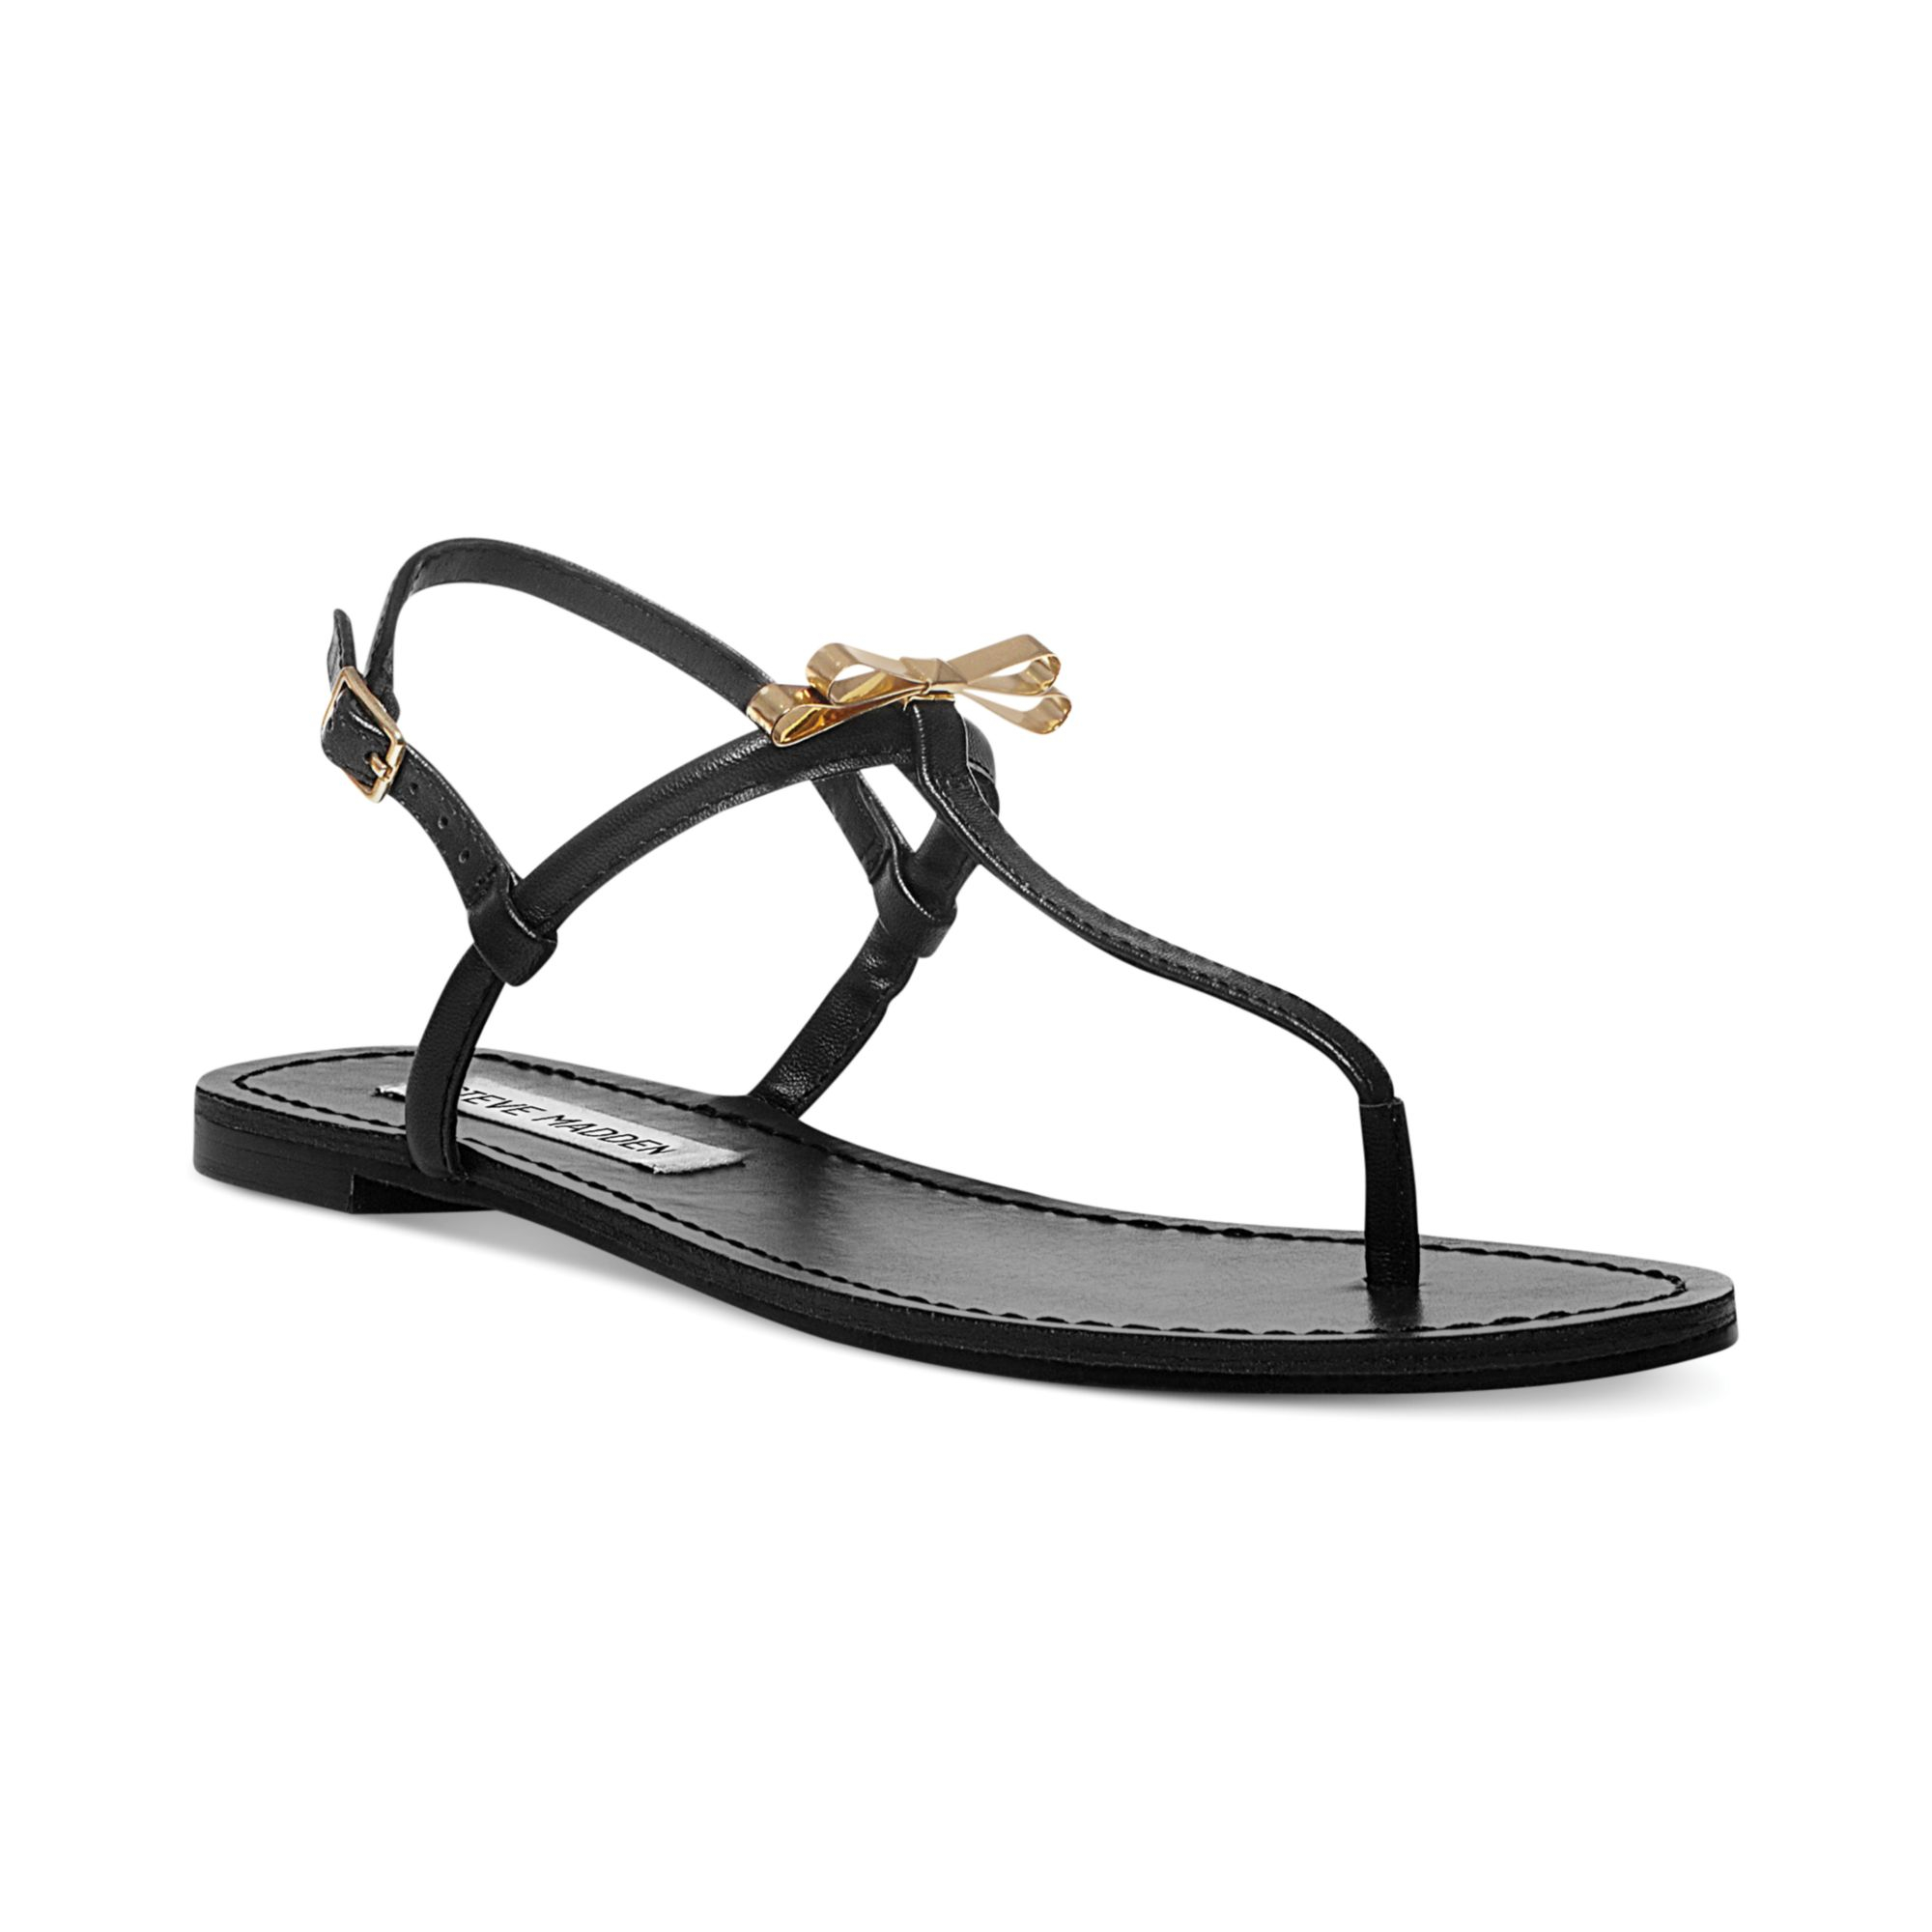 Simple Home Shoes Womens Sandals Grace Women Leather Black Thong Sandal